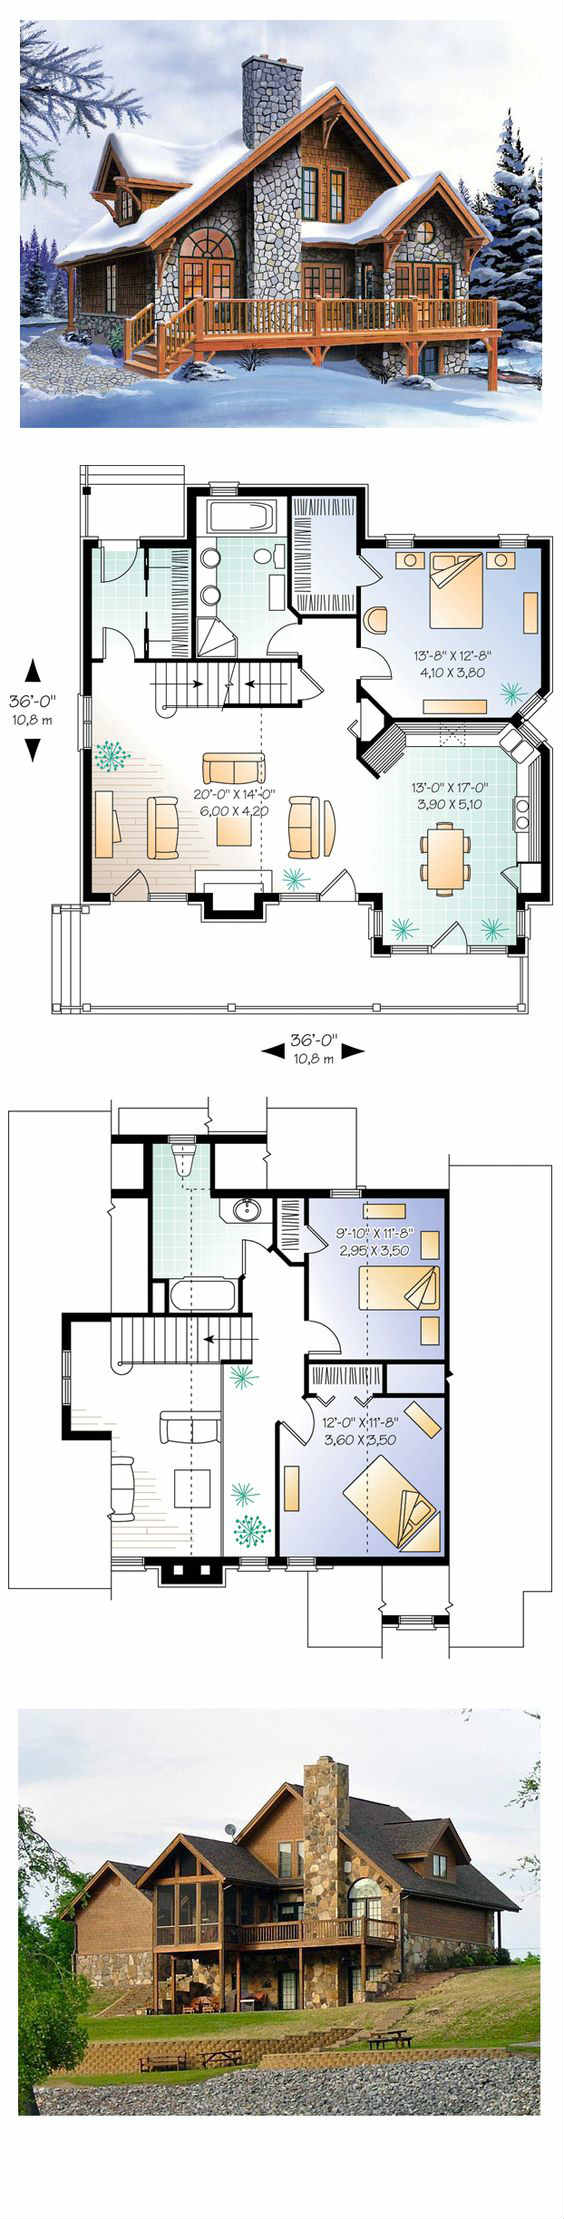 Different type of house plans house plans Types of house plans